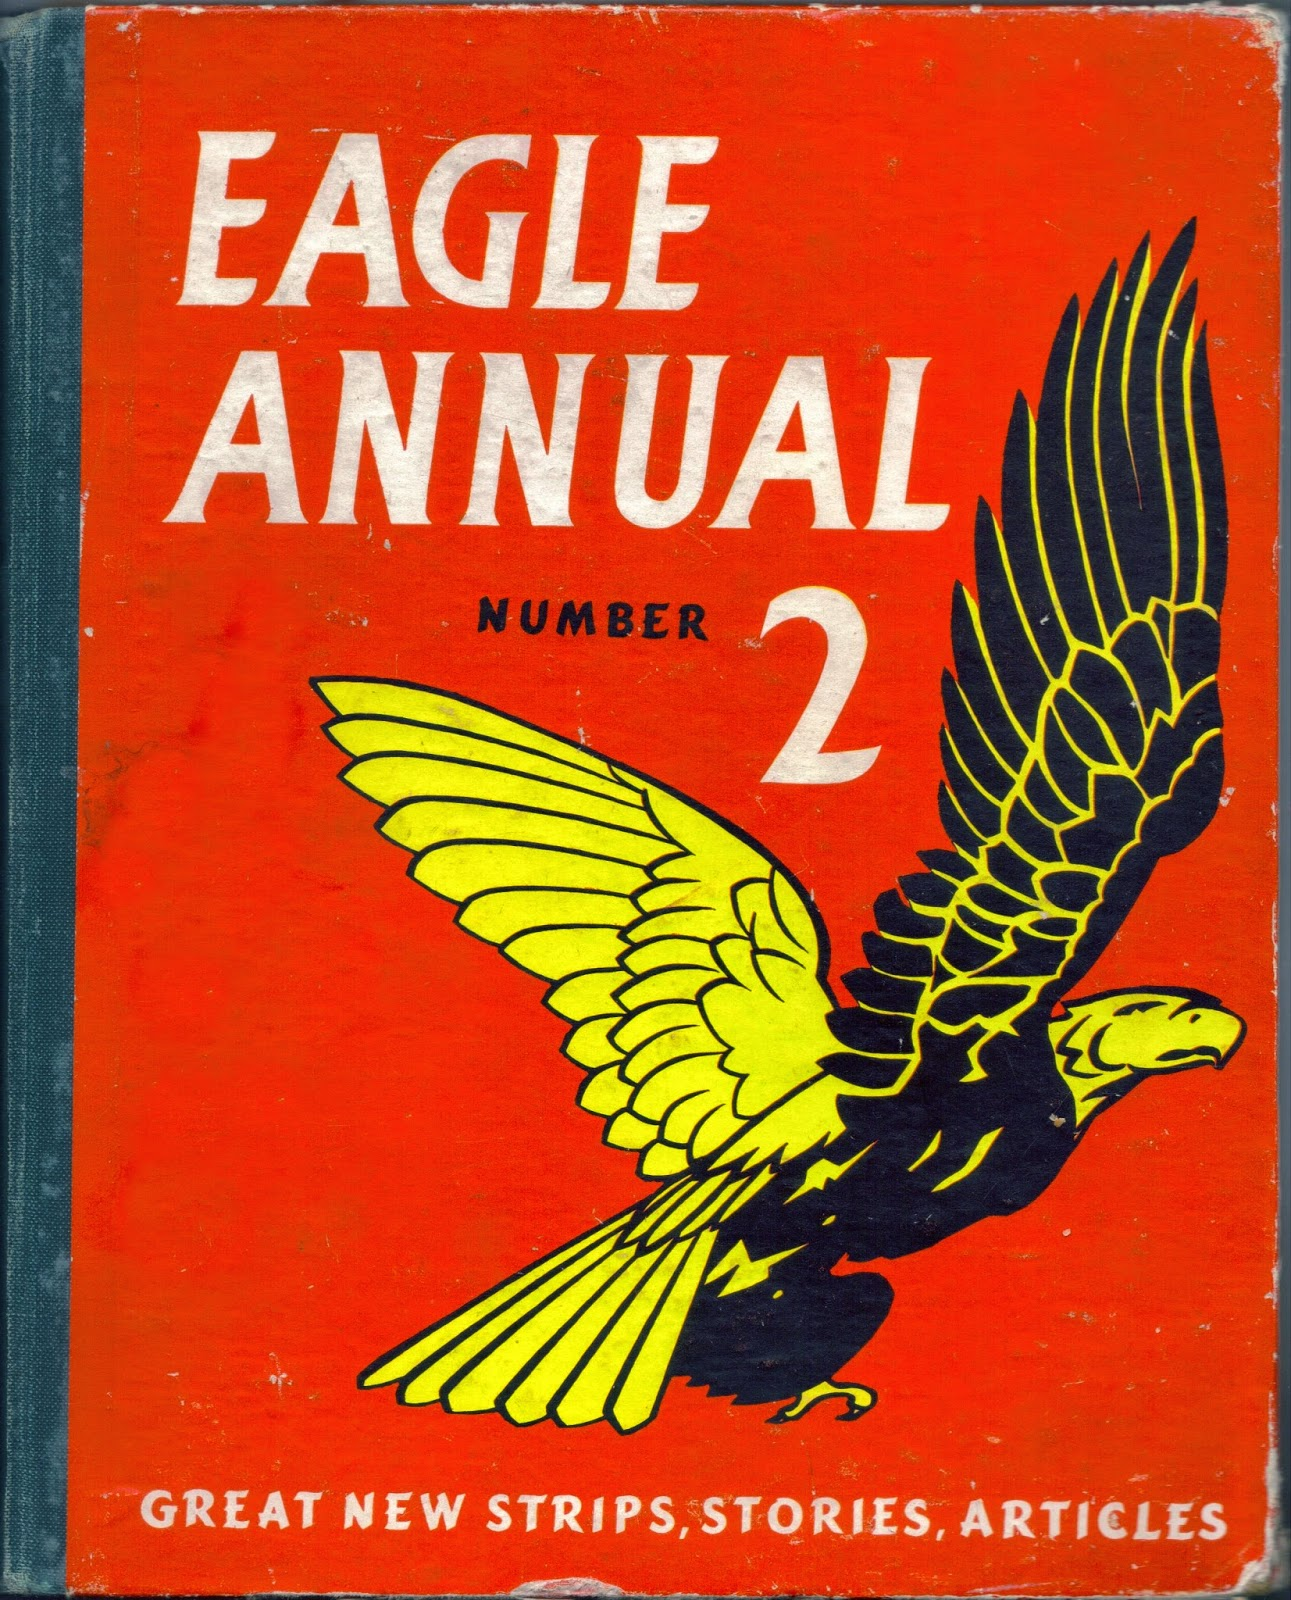 Eagle annual No.2